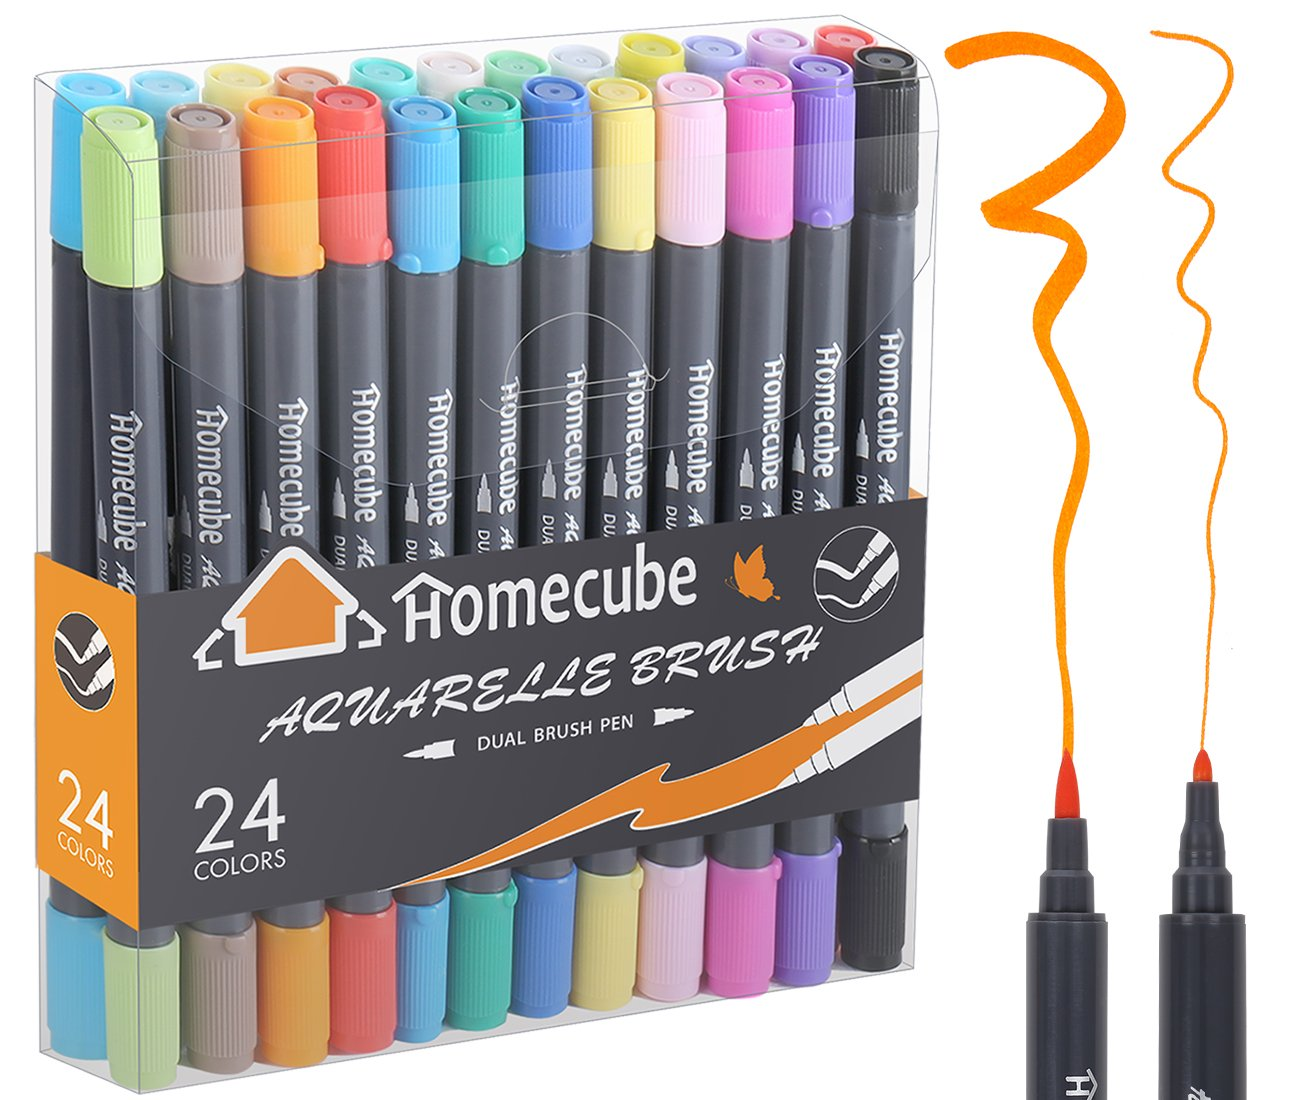 Dual Brush Pens Watercolor Brush Pen, Homecube 12 Assorted Colors Dual Tip Markers Highlighters With Brush Tip(1mm-2mm) and Fine Tip(0.8mm),Ideal for Doodling, Calligraphy, Painting Coloring HCJJ010